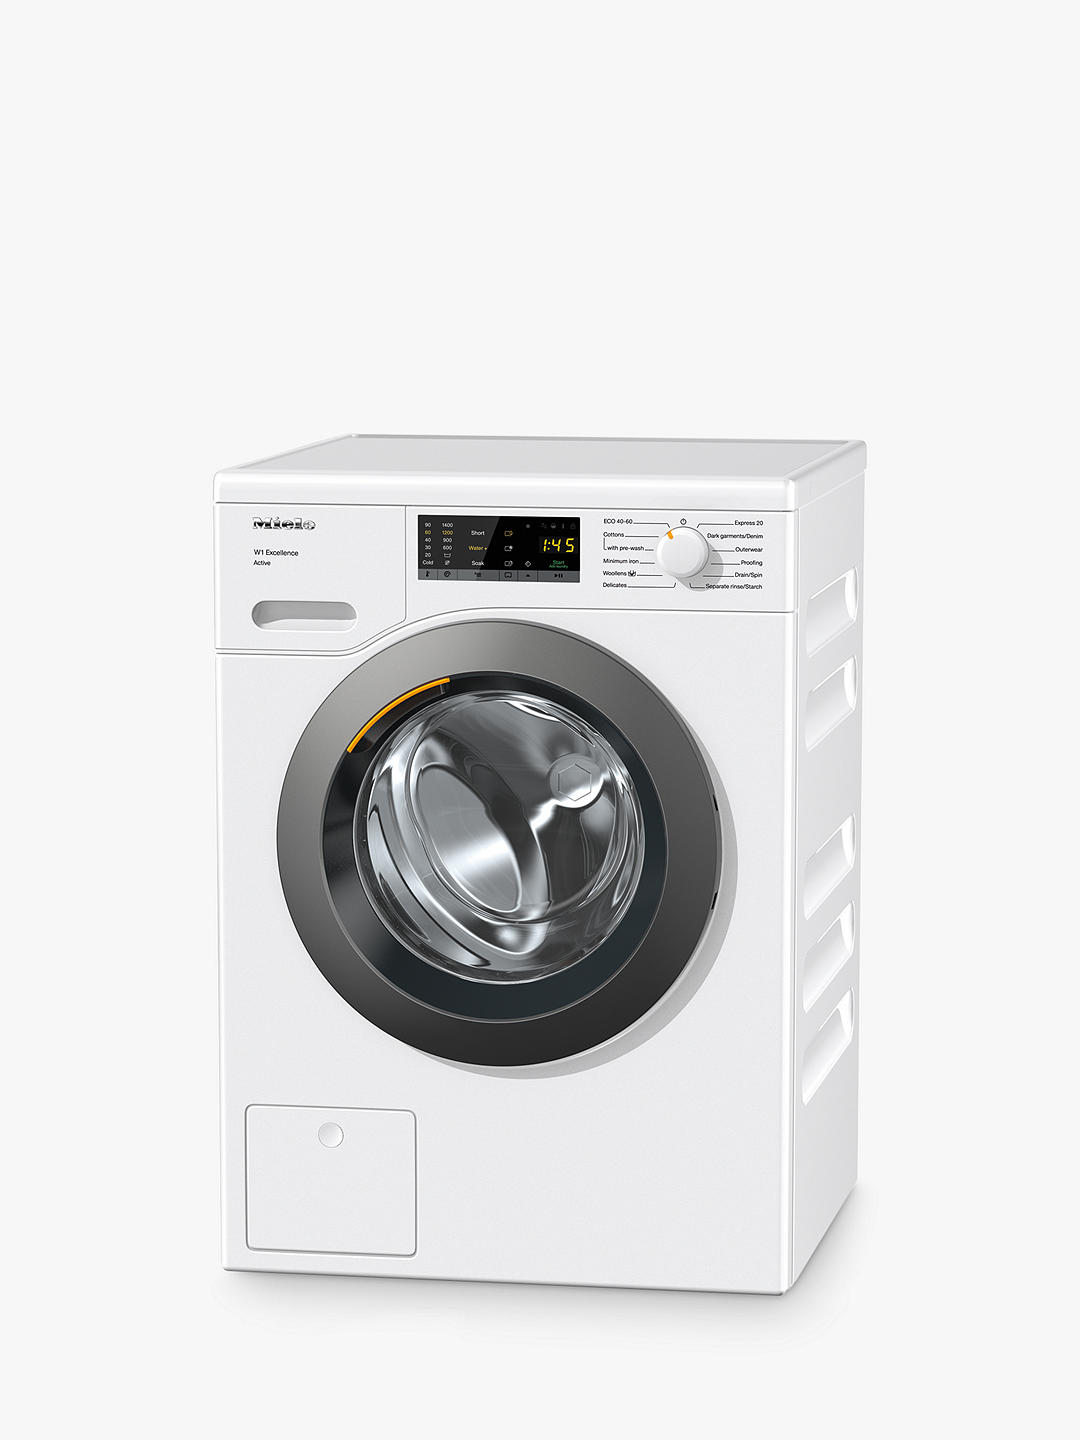 Buy Miele WEA025 Freestanding Washing Machine, 7kg Load, 1400rpm Spin, White Online at johnlewis.com